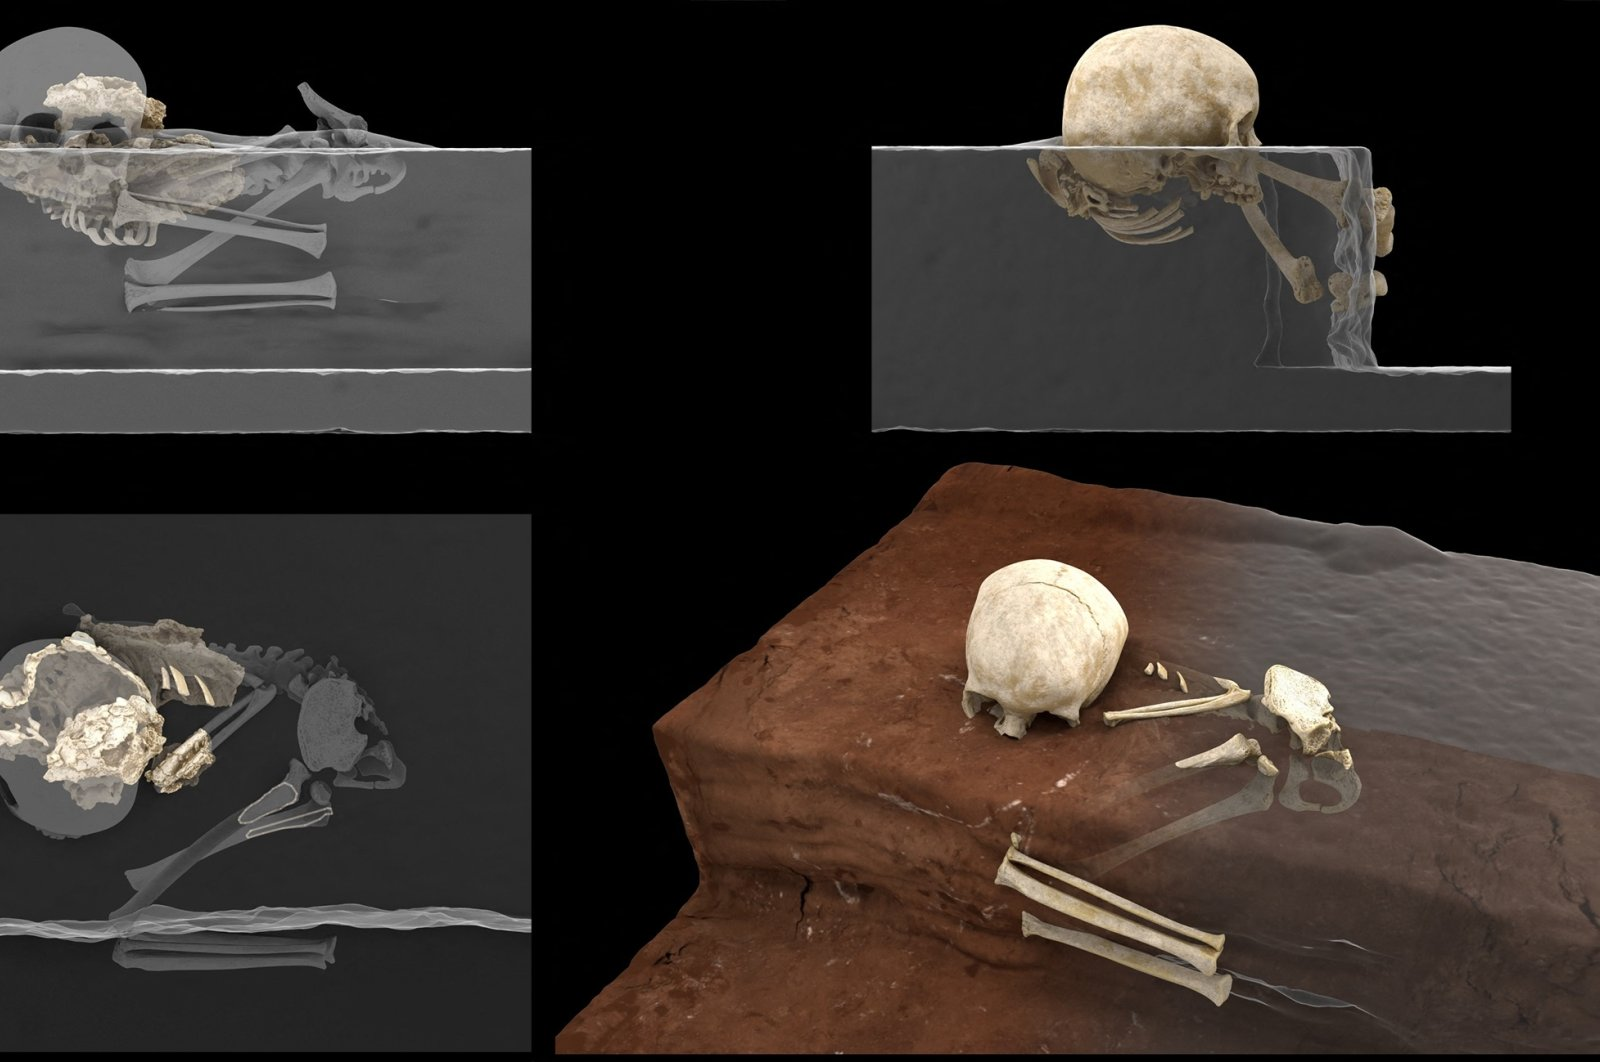 """This handout computer-generated image released on May 4, 2021, by the CNRS-University of Bordeaux, shows the remains of a 3-year-old child named by the scientists """"Mtoto"""" (meaning """"child"""" in Swahili) and buried inside a deliberately dug pit, were discovered by archaeologists.  (AFP Photo /FRANCESCO D'ERRICO AND ALAIN QUEFFELEC/CNRS-UNIVERSITY OF BORDEAUX)"""